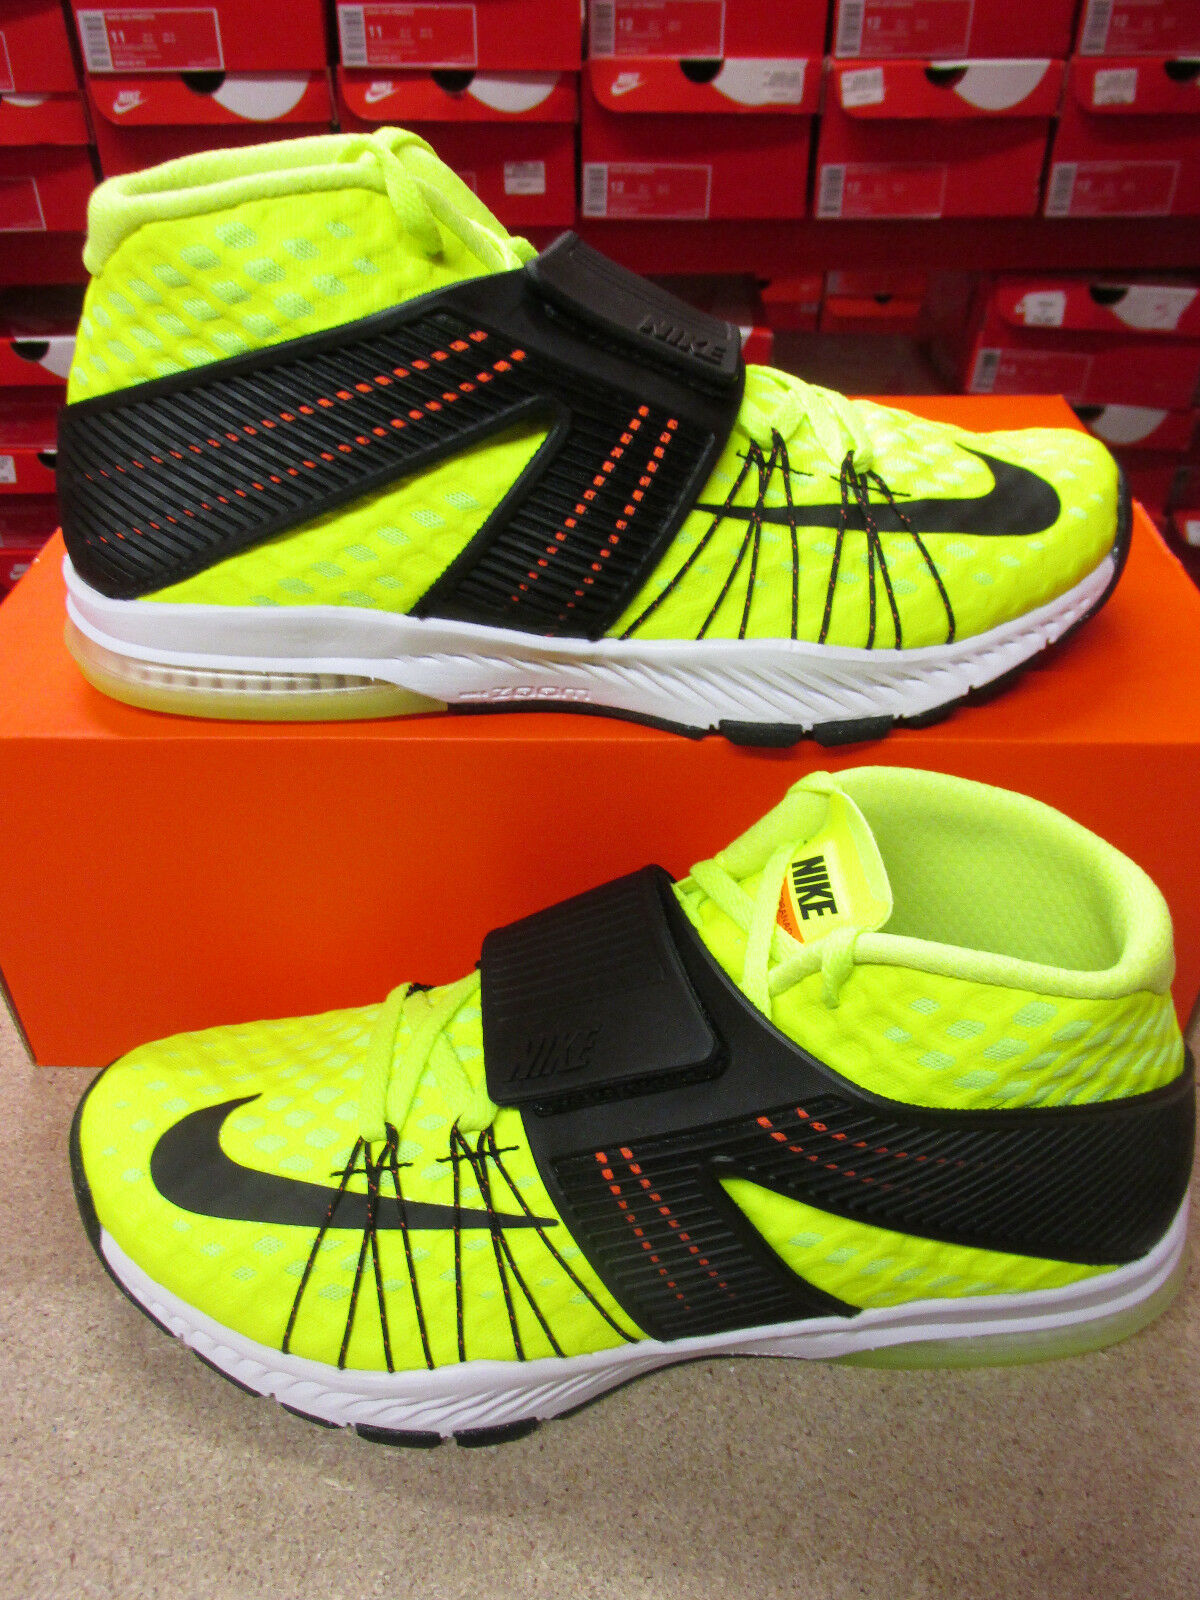 Nike Zoom Train Toranada Mens Running Trainers 835657 708 Sneakers Shoes